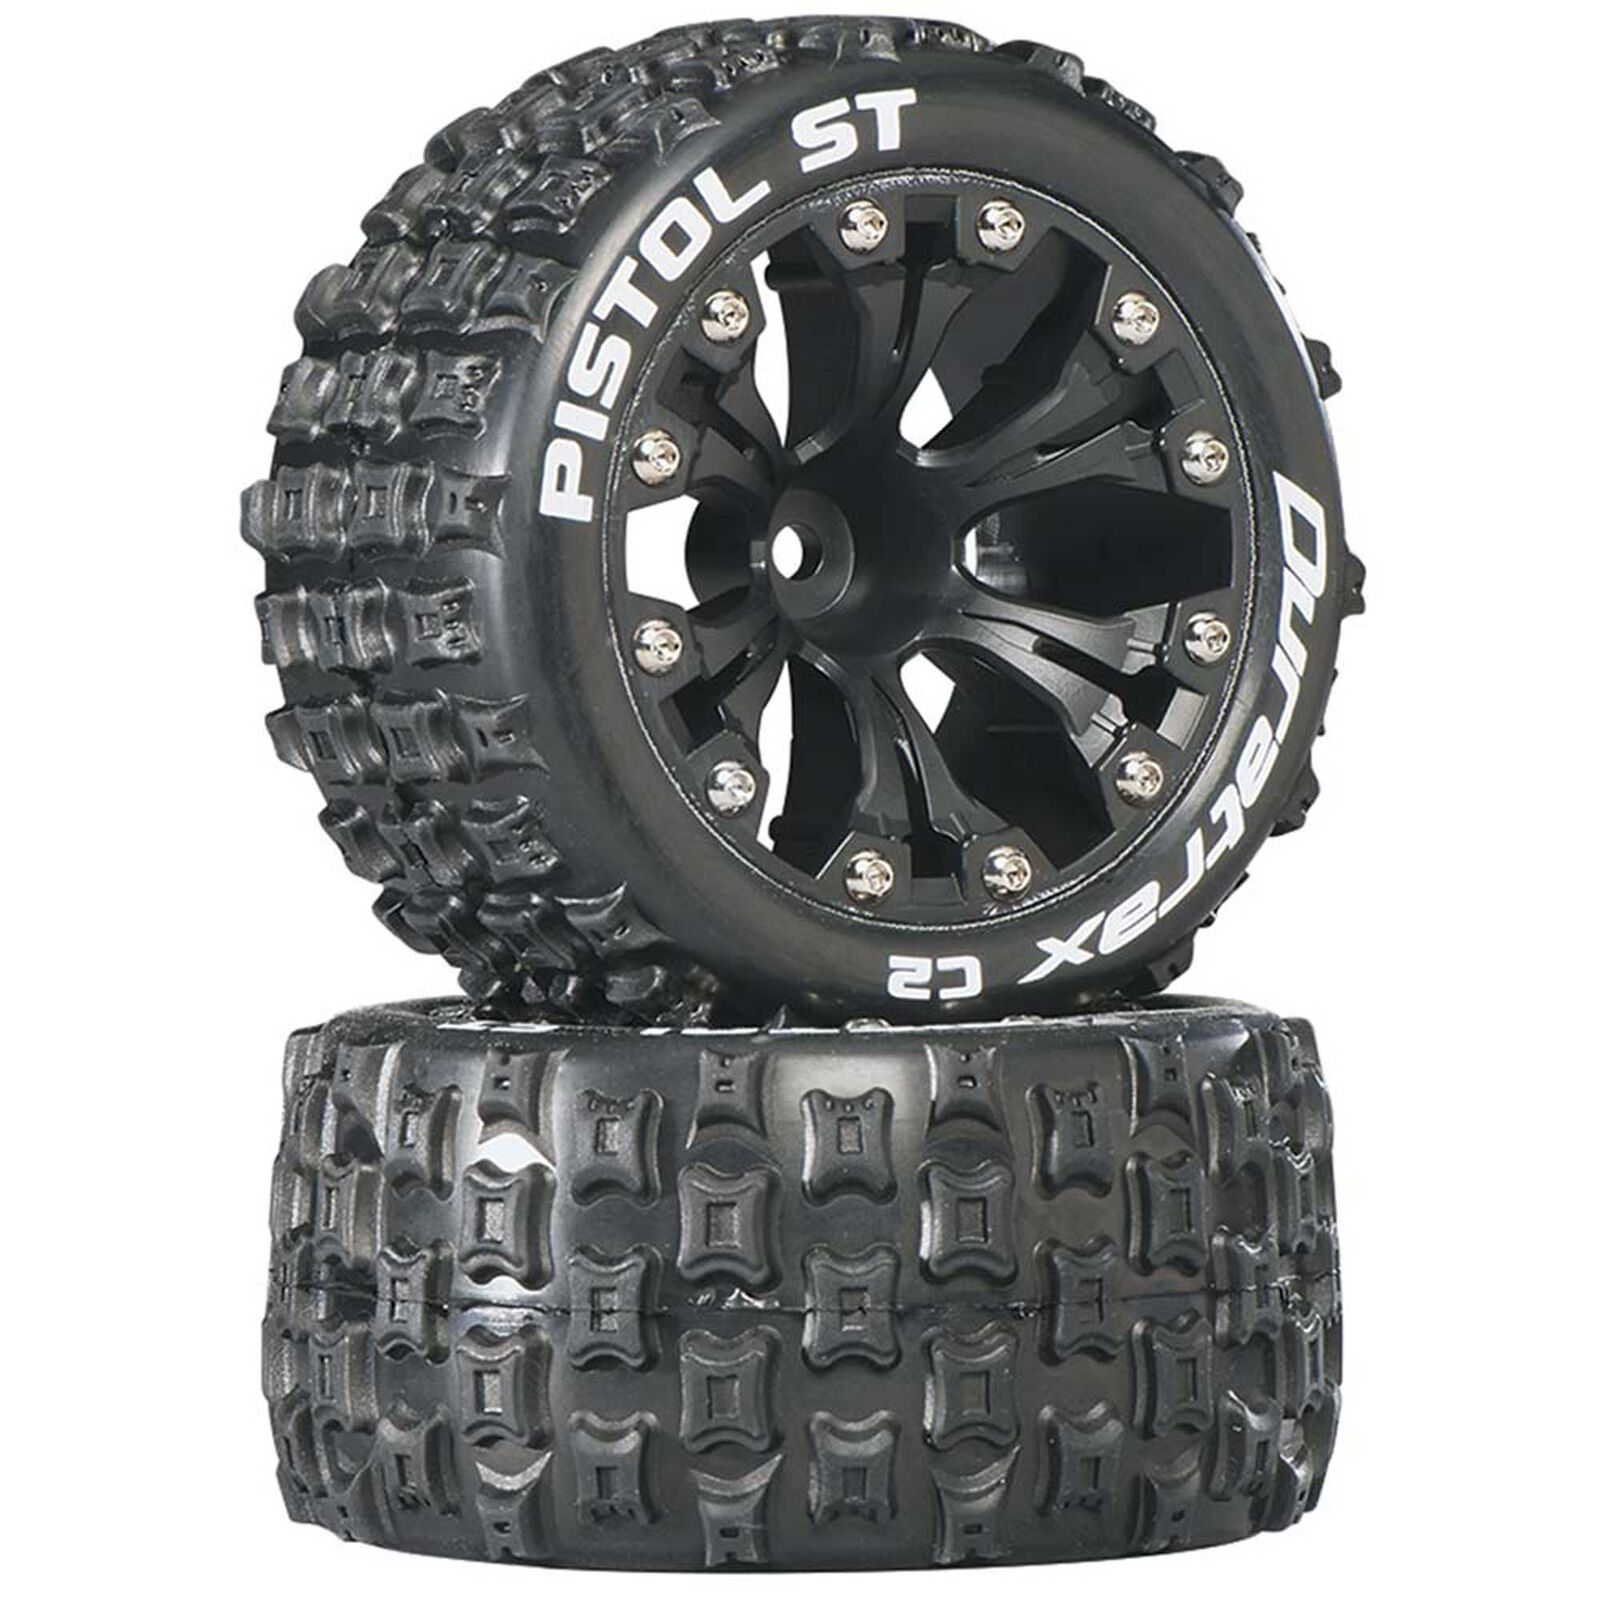 "Pistol ST 2.8"" Mounted 1/2"" Offset C2 Tires, Black (2)"